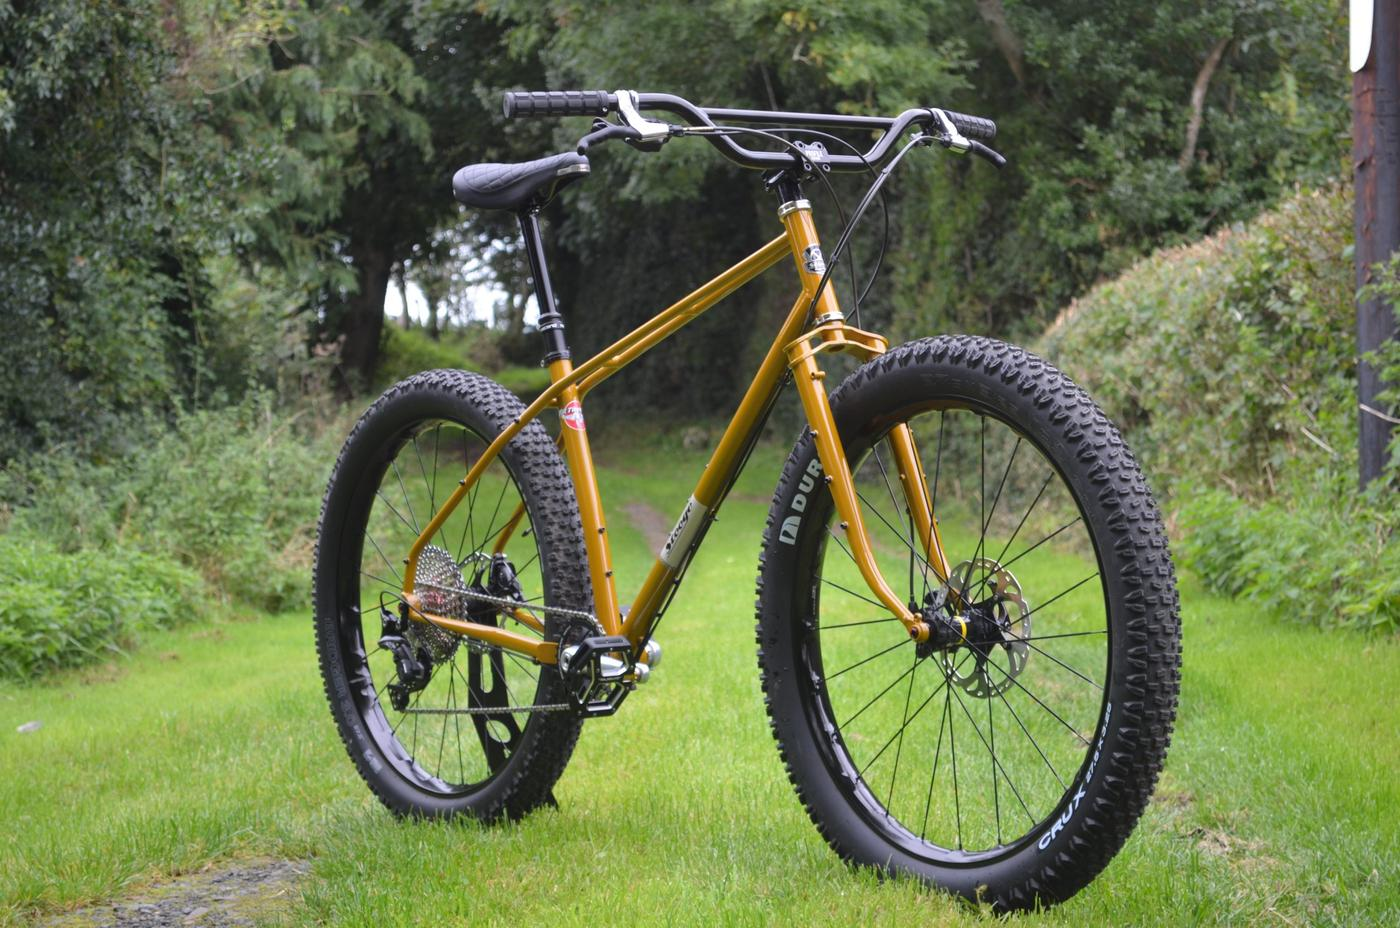 Introducing the Stooge Cycles Scrambler